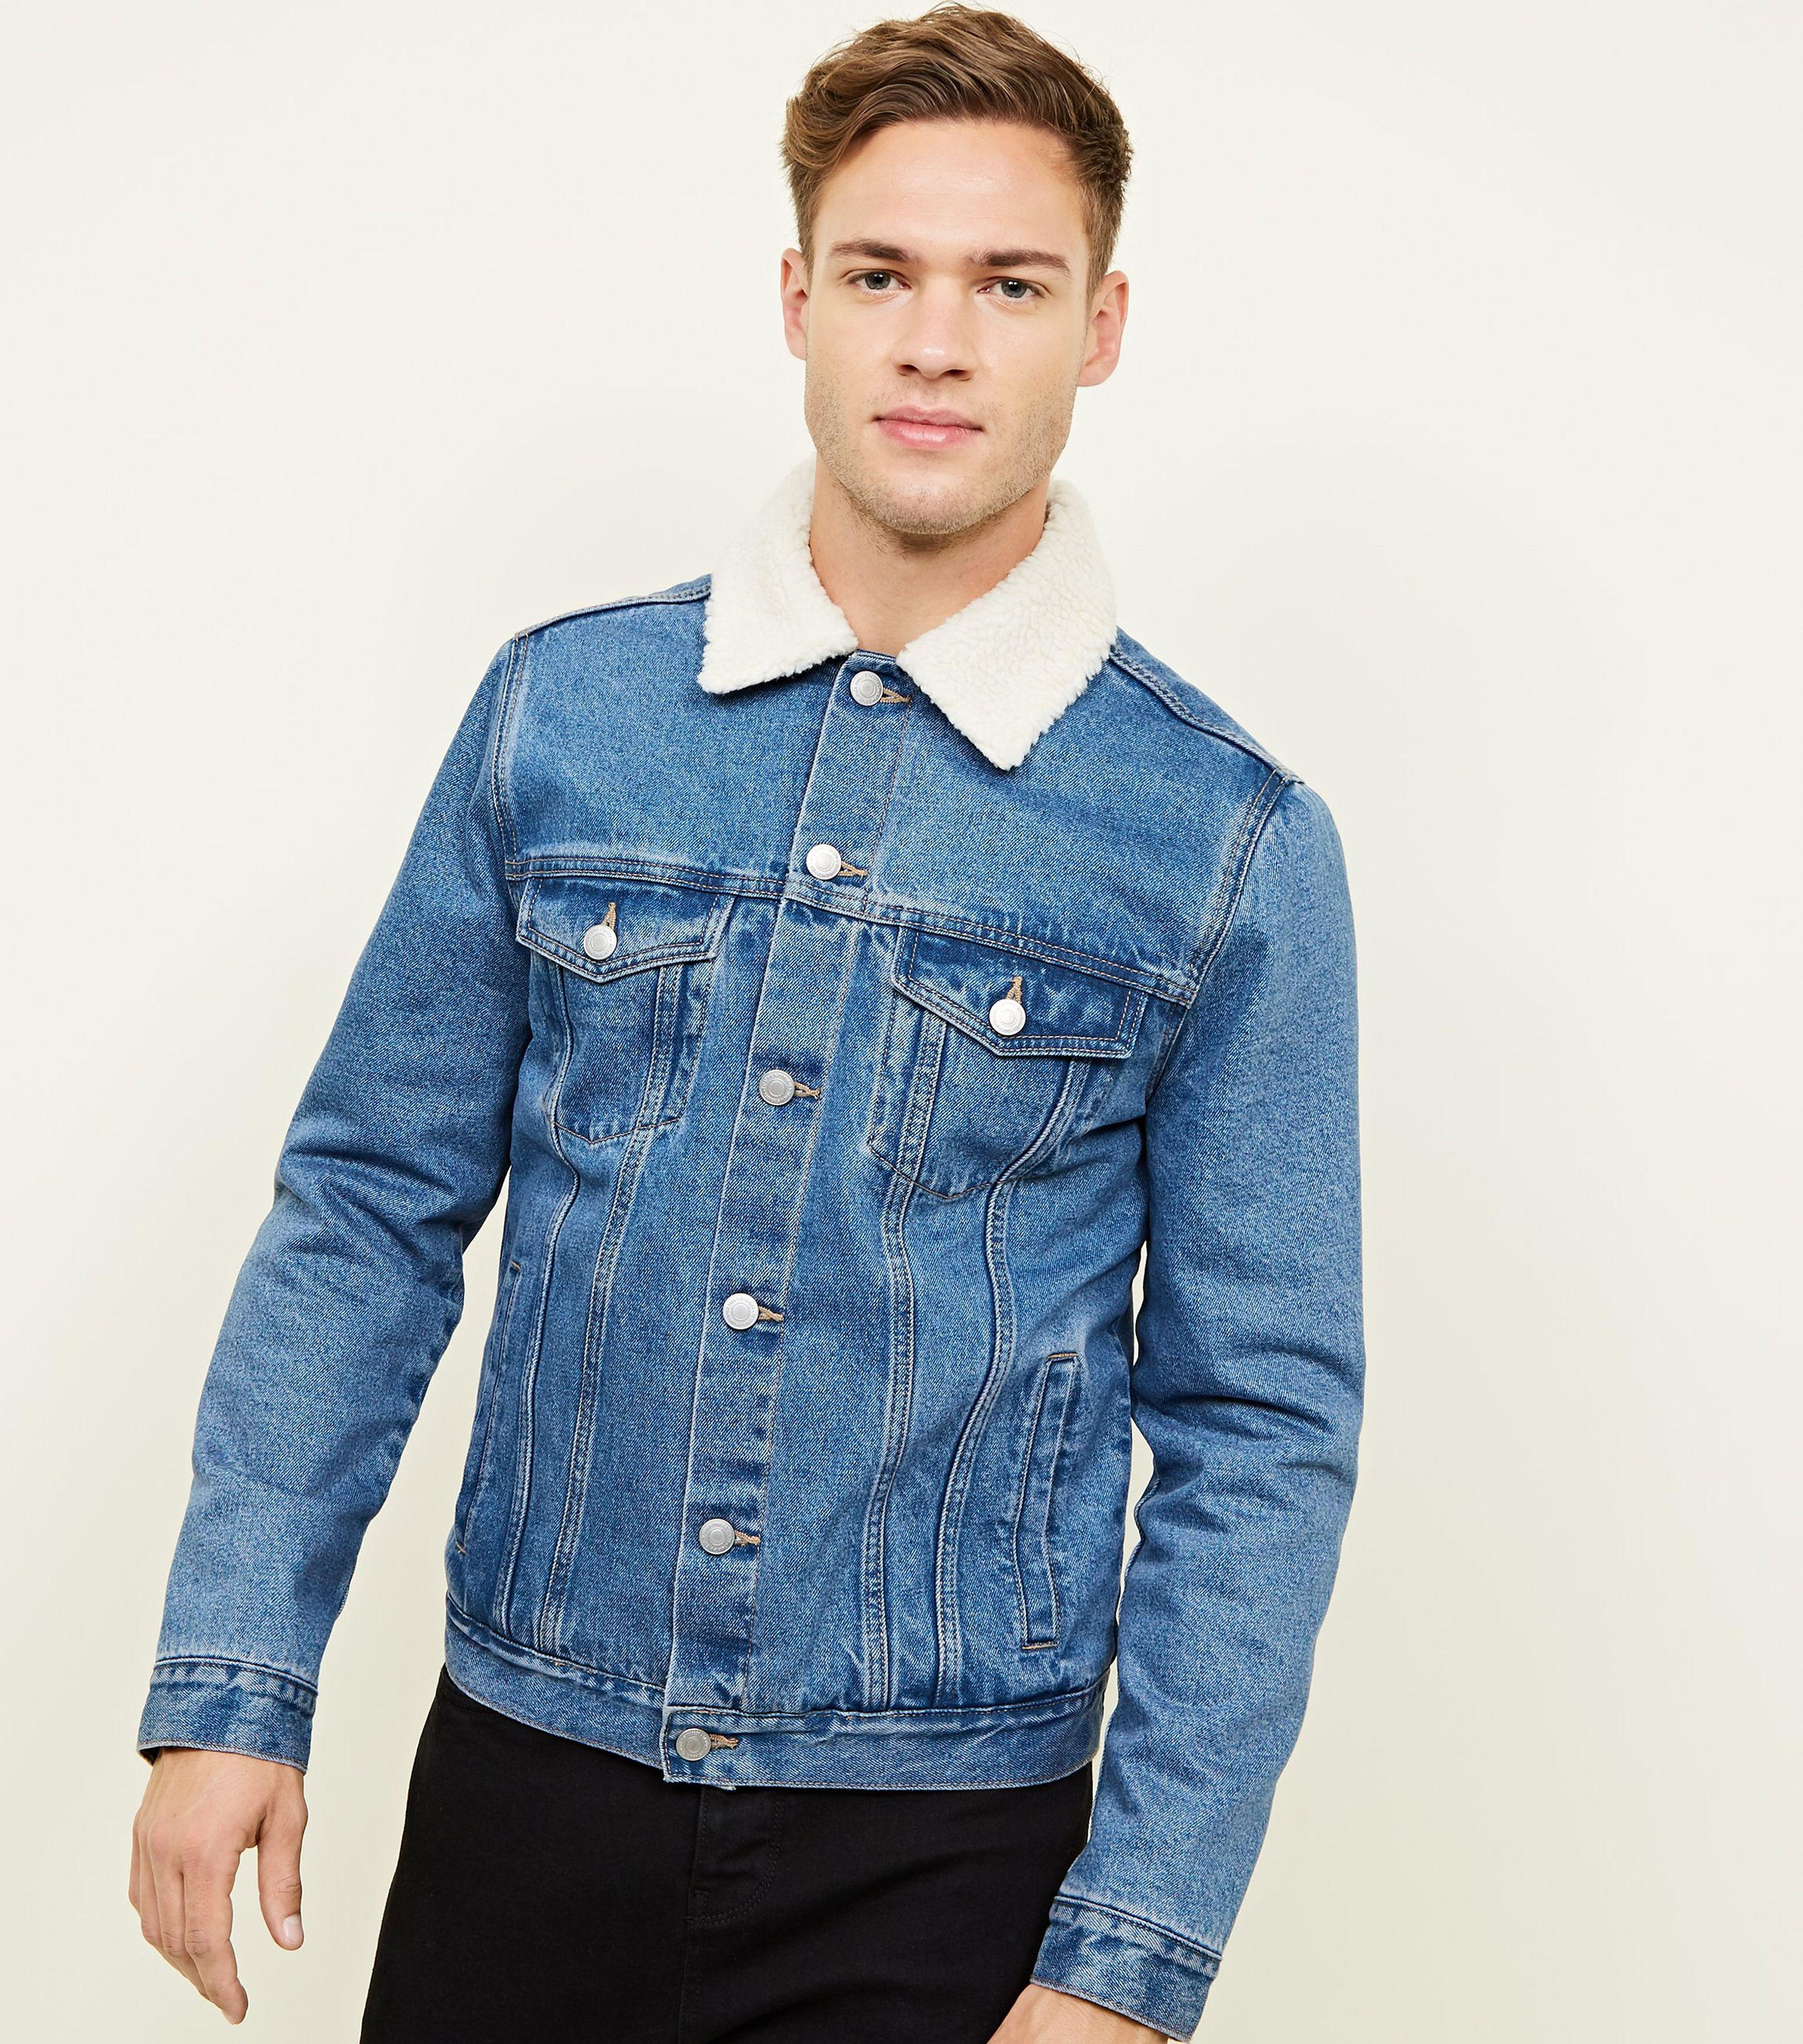 6adde1a0a48 New Look Blue Washed Borg Lined Denim Jacket in Blue for Men - Lyst